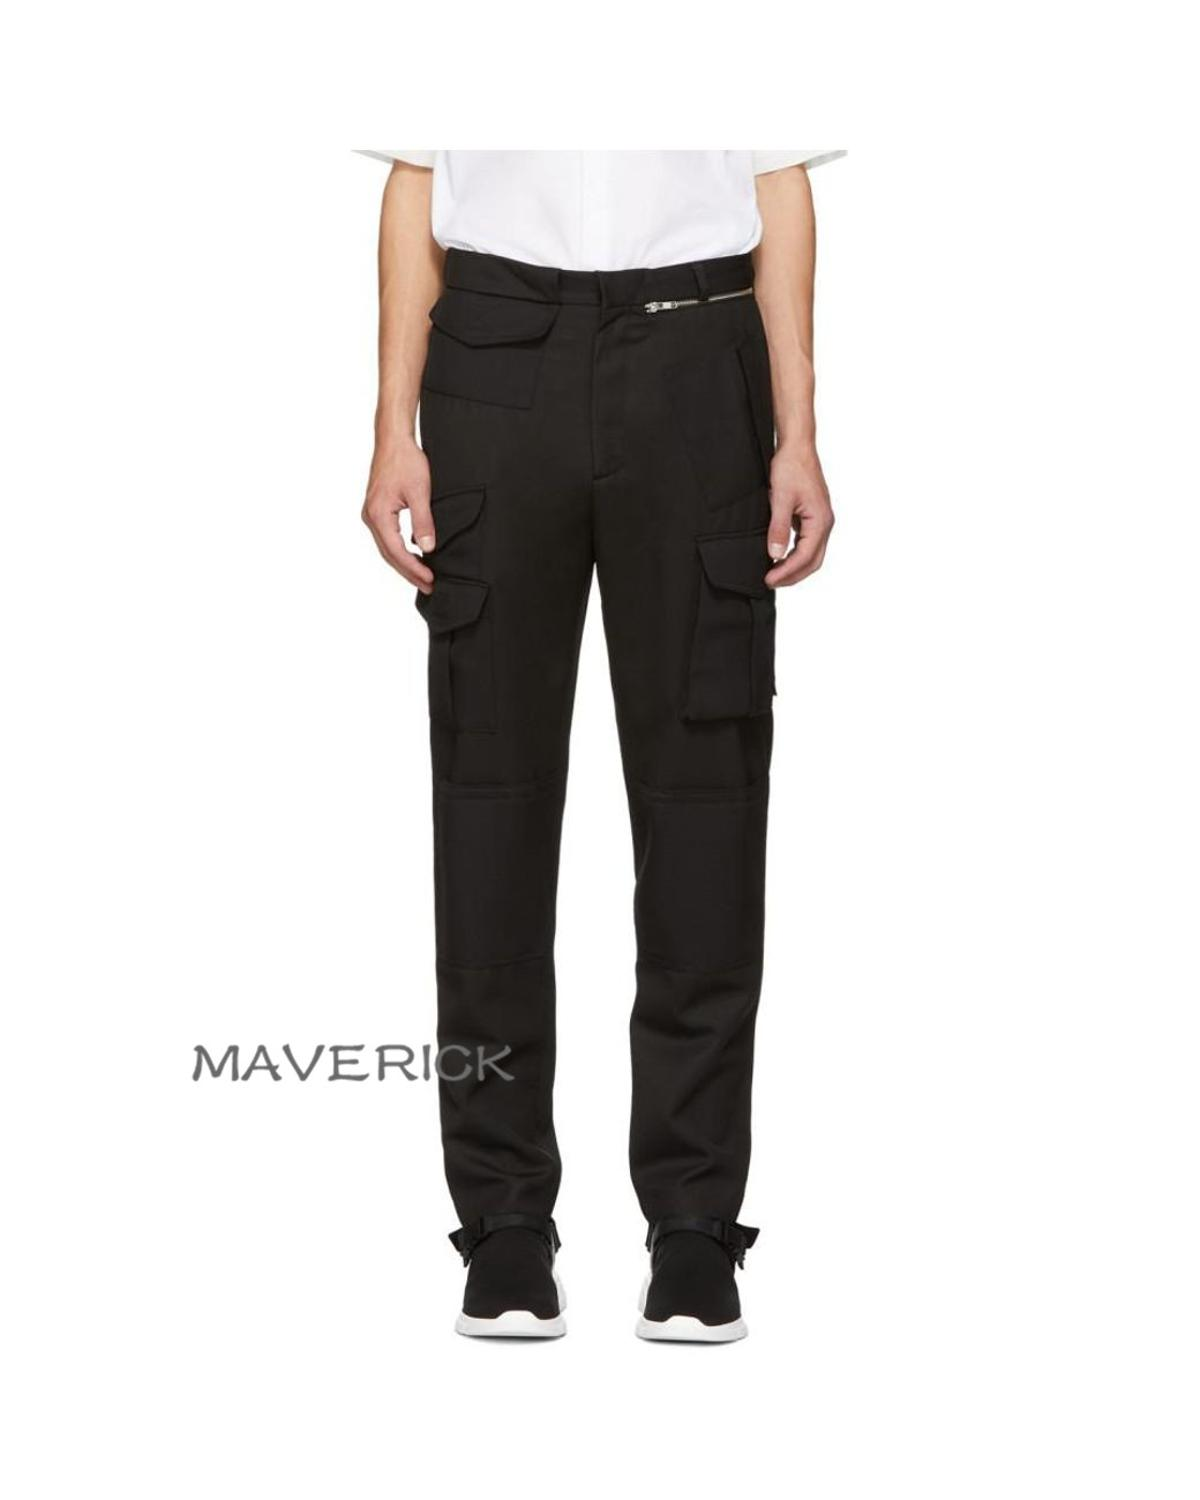 27-44!!2019 Men's autumn/winter cotton irregular overalls with asymmetrical pockets for slim-fitting trousers with small feet